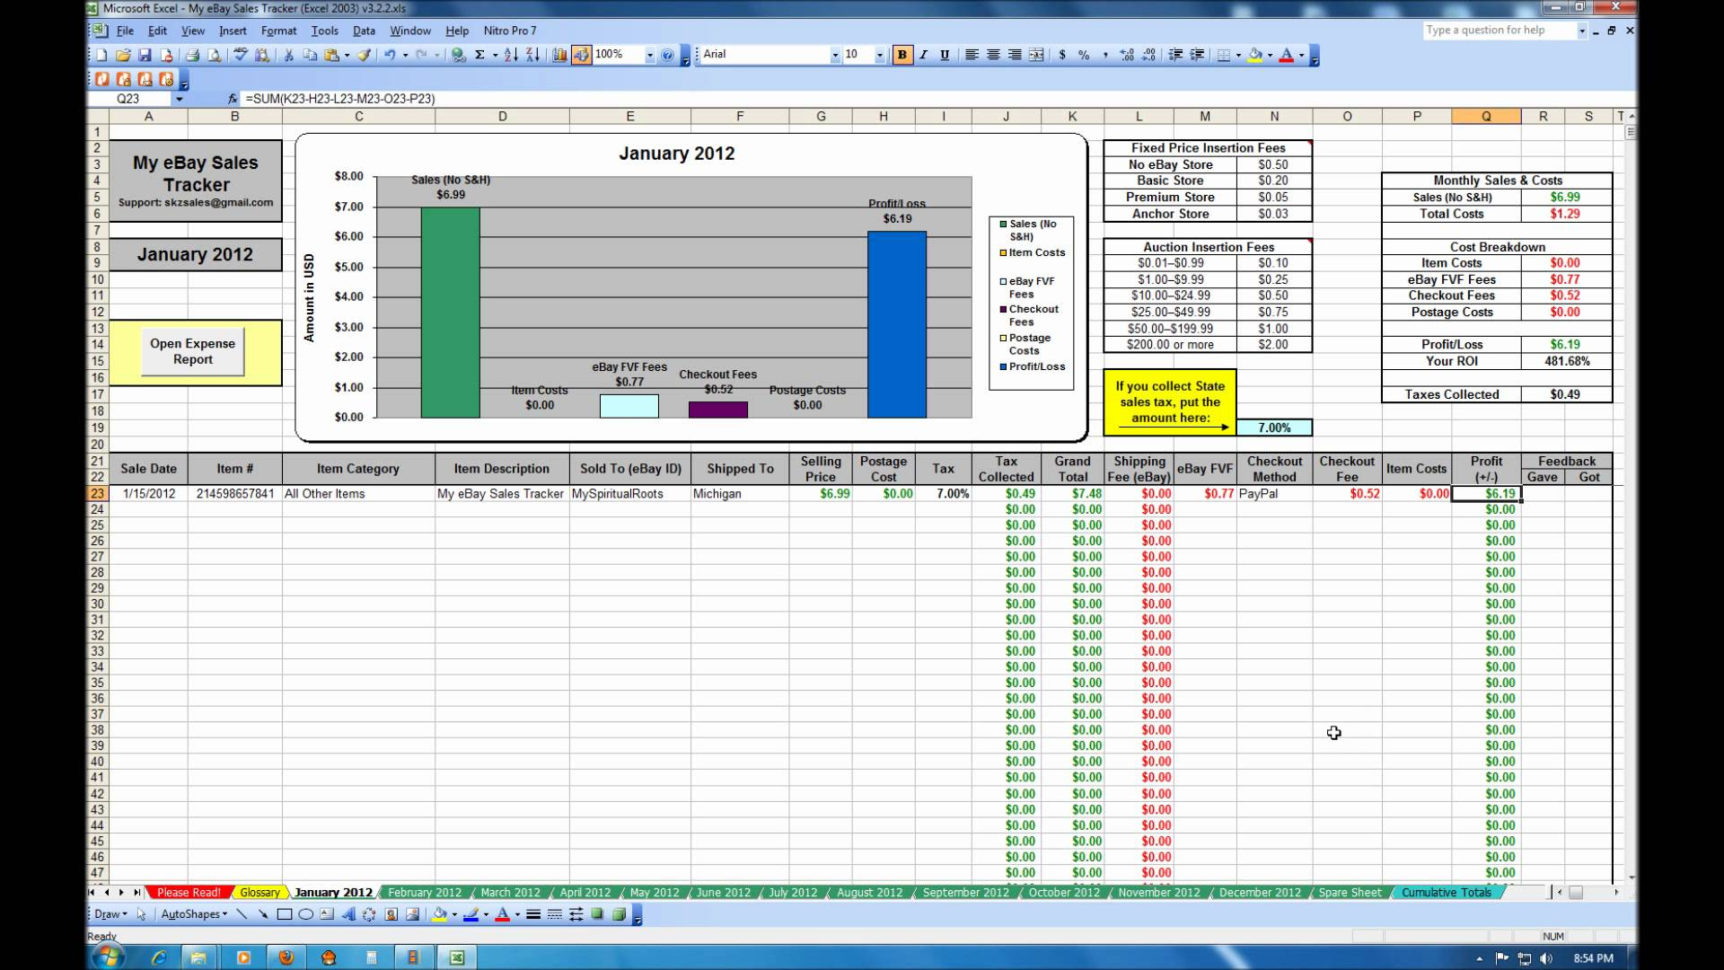 Sales Tracking Spreadsheet On Excel Spreadsheet Free Excel Intended For Free Sales Tracking Spreadsheet Excel